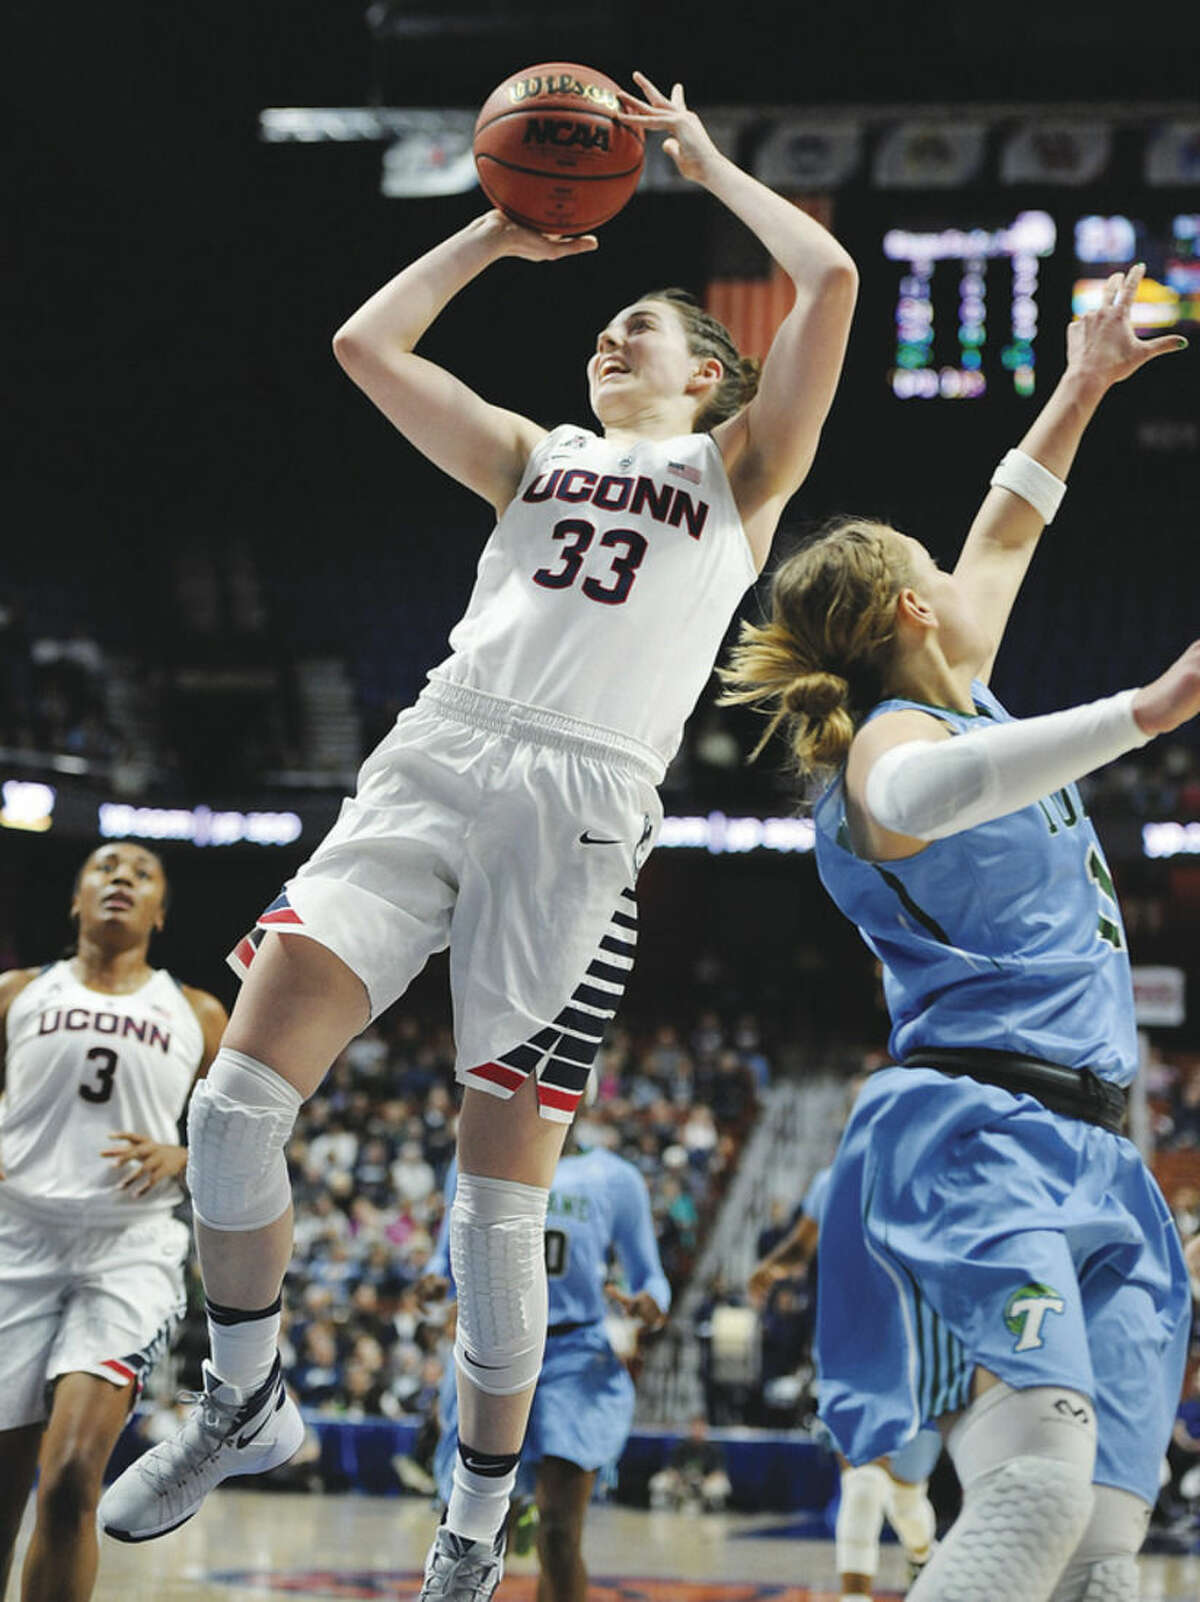 AP photo UConn's Katie Lou Samuelson (33) shoots past Tulane's Leslie Vorpahl during the first half of Sunday's American Athletic Conference tournament semifinal game at Mohegan Sun Arena in Uncasville. Samuelson, who is just a freshman, scored 17 points in the Huskies' 82-35 rout of the Green Wave.